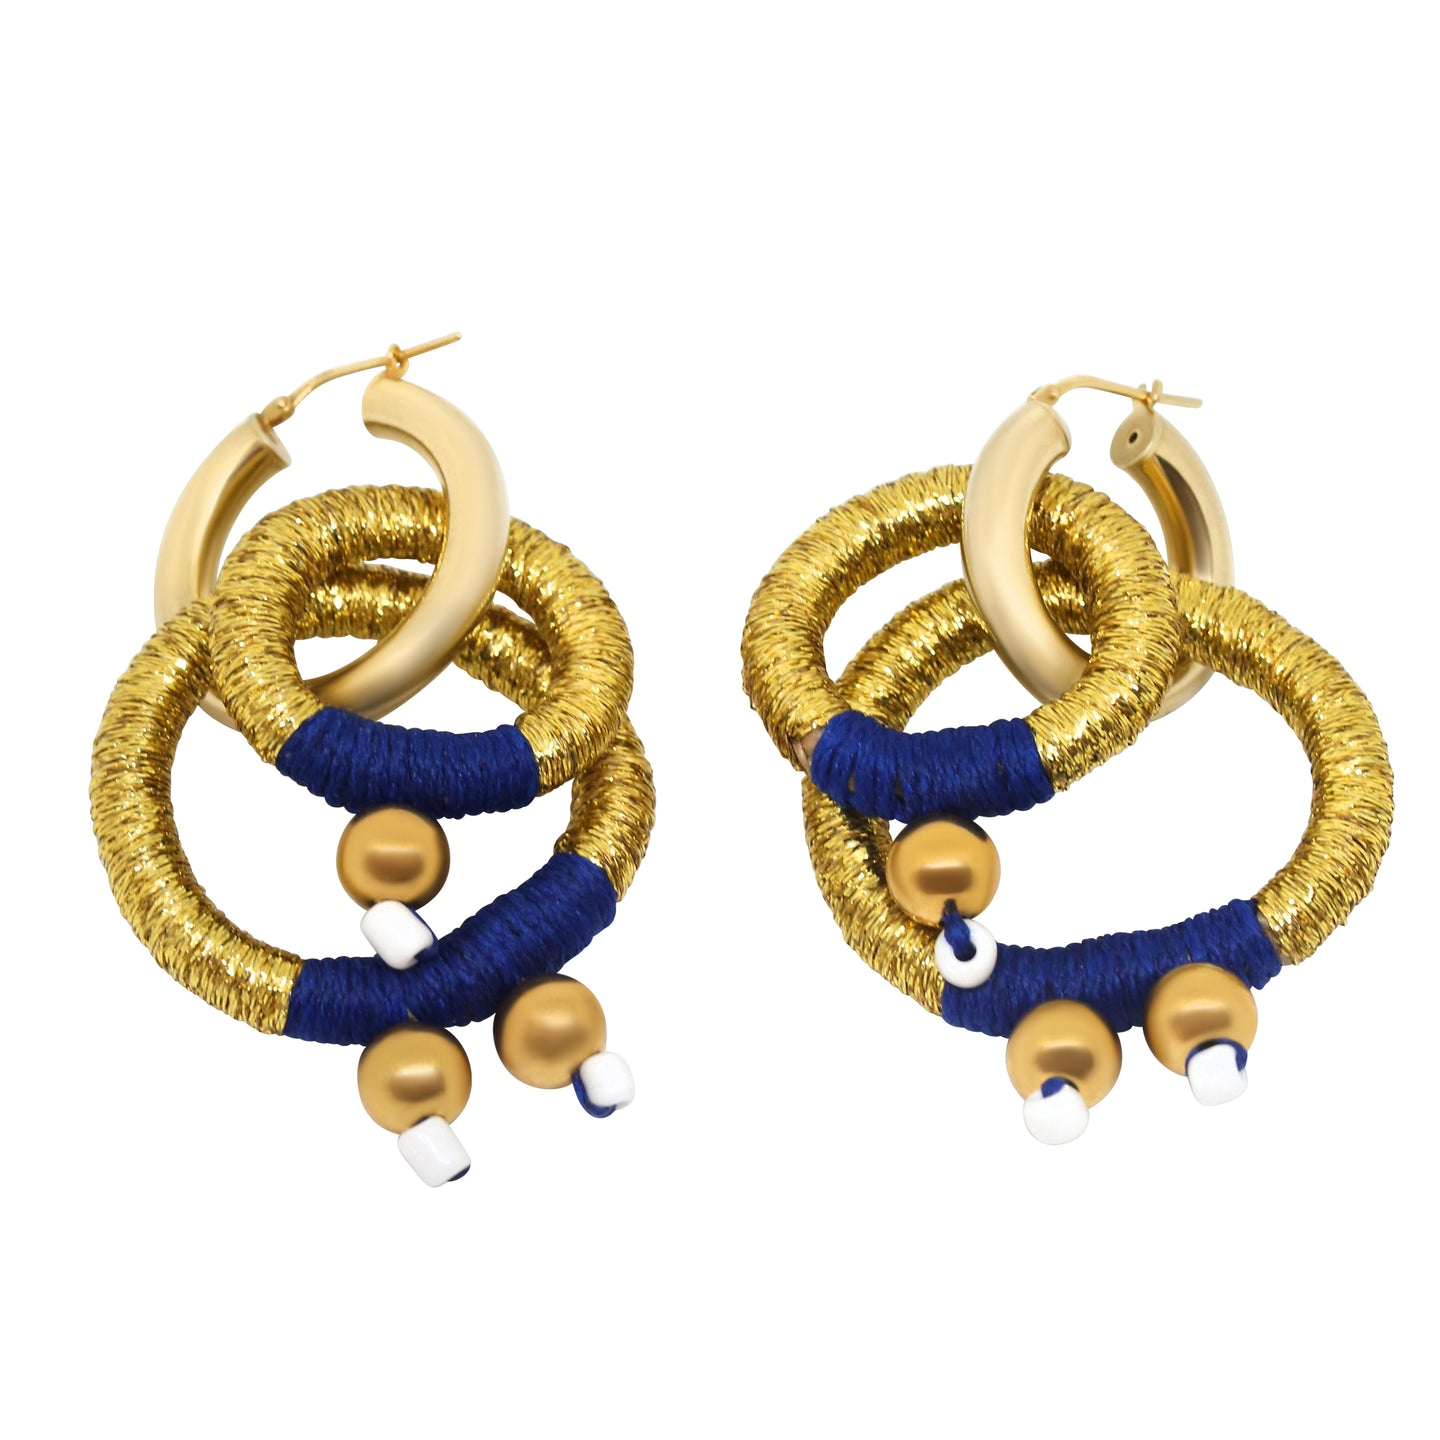 MyJulz - Blue and Gold Earrings - Handmade Statement Earrings